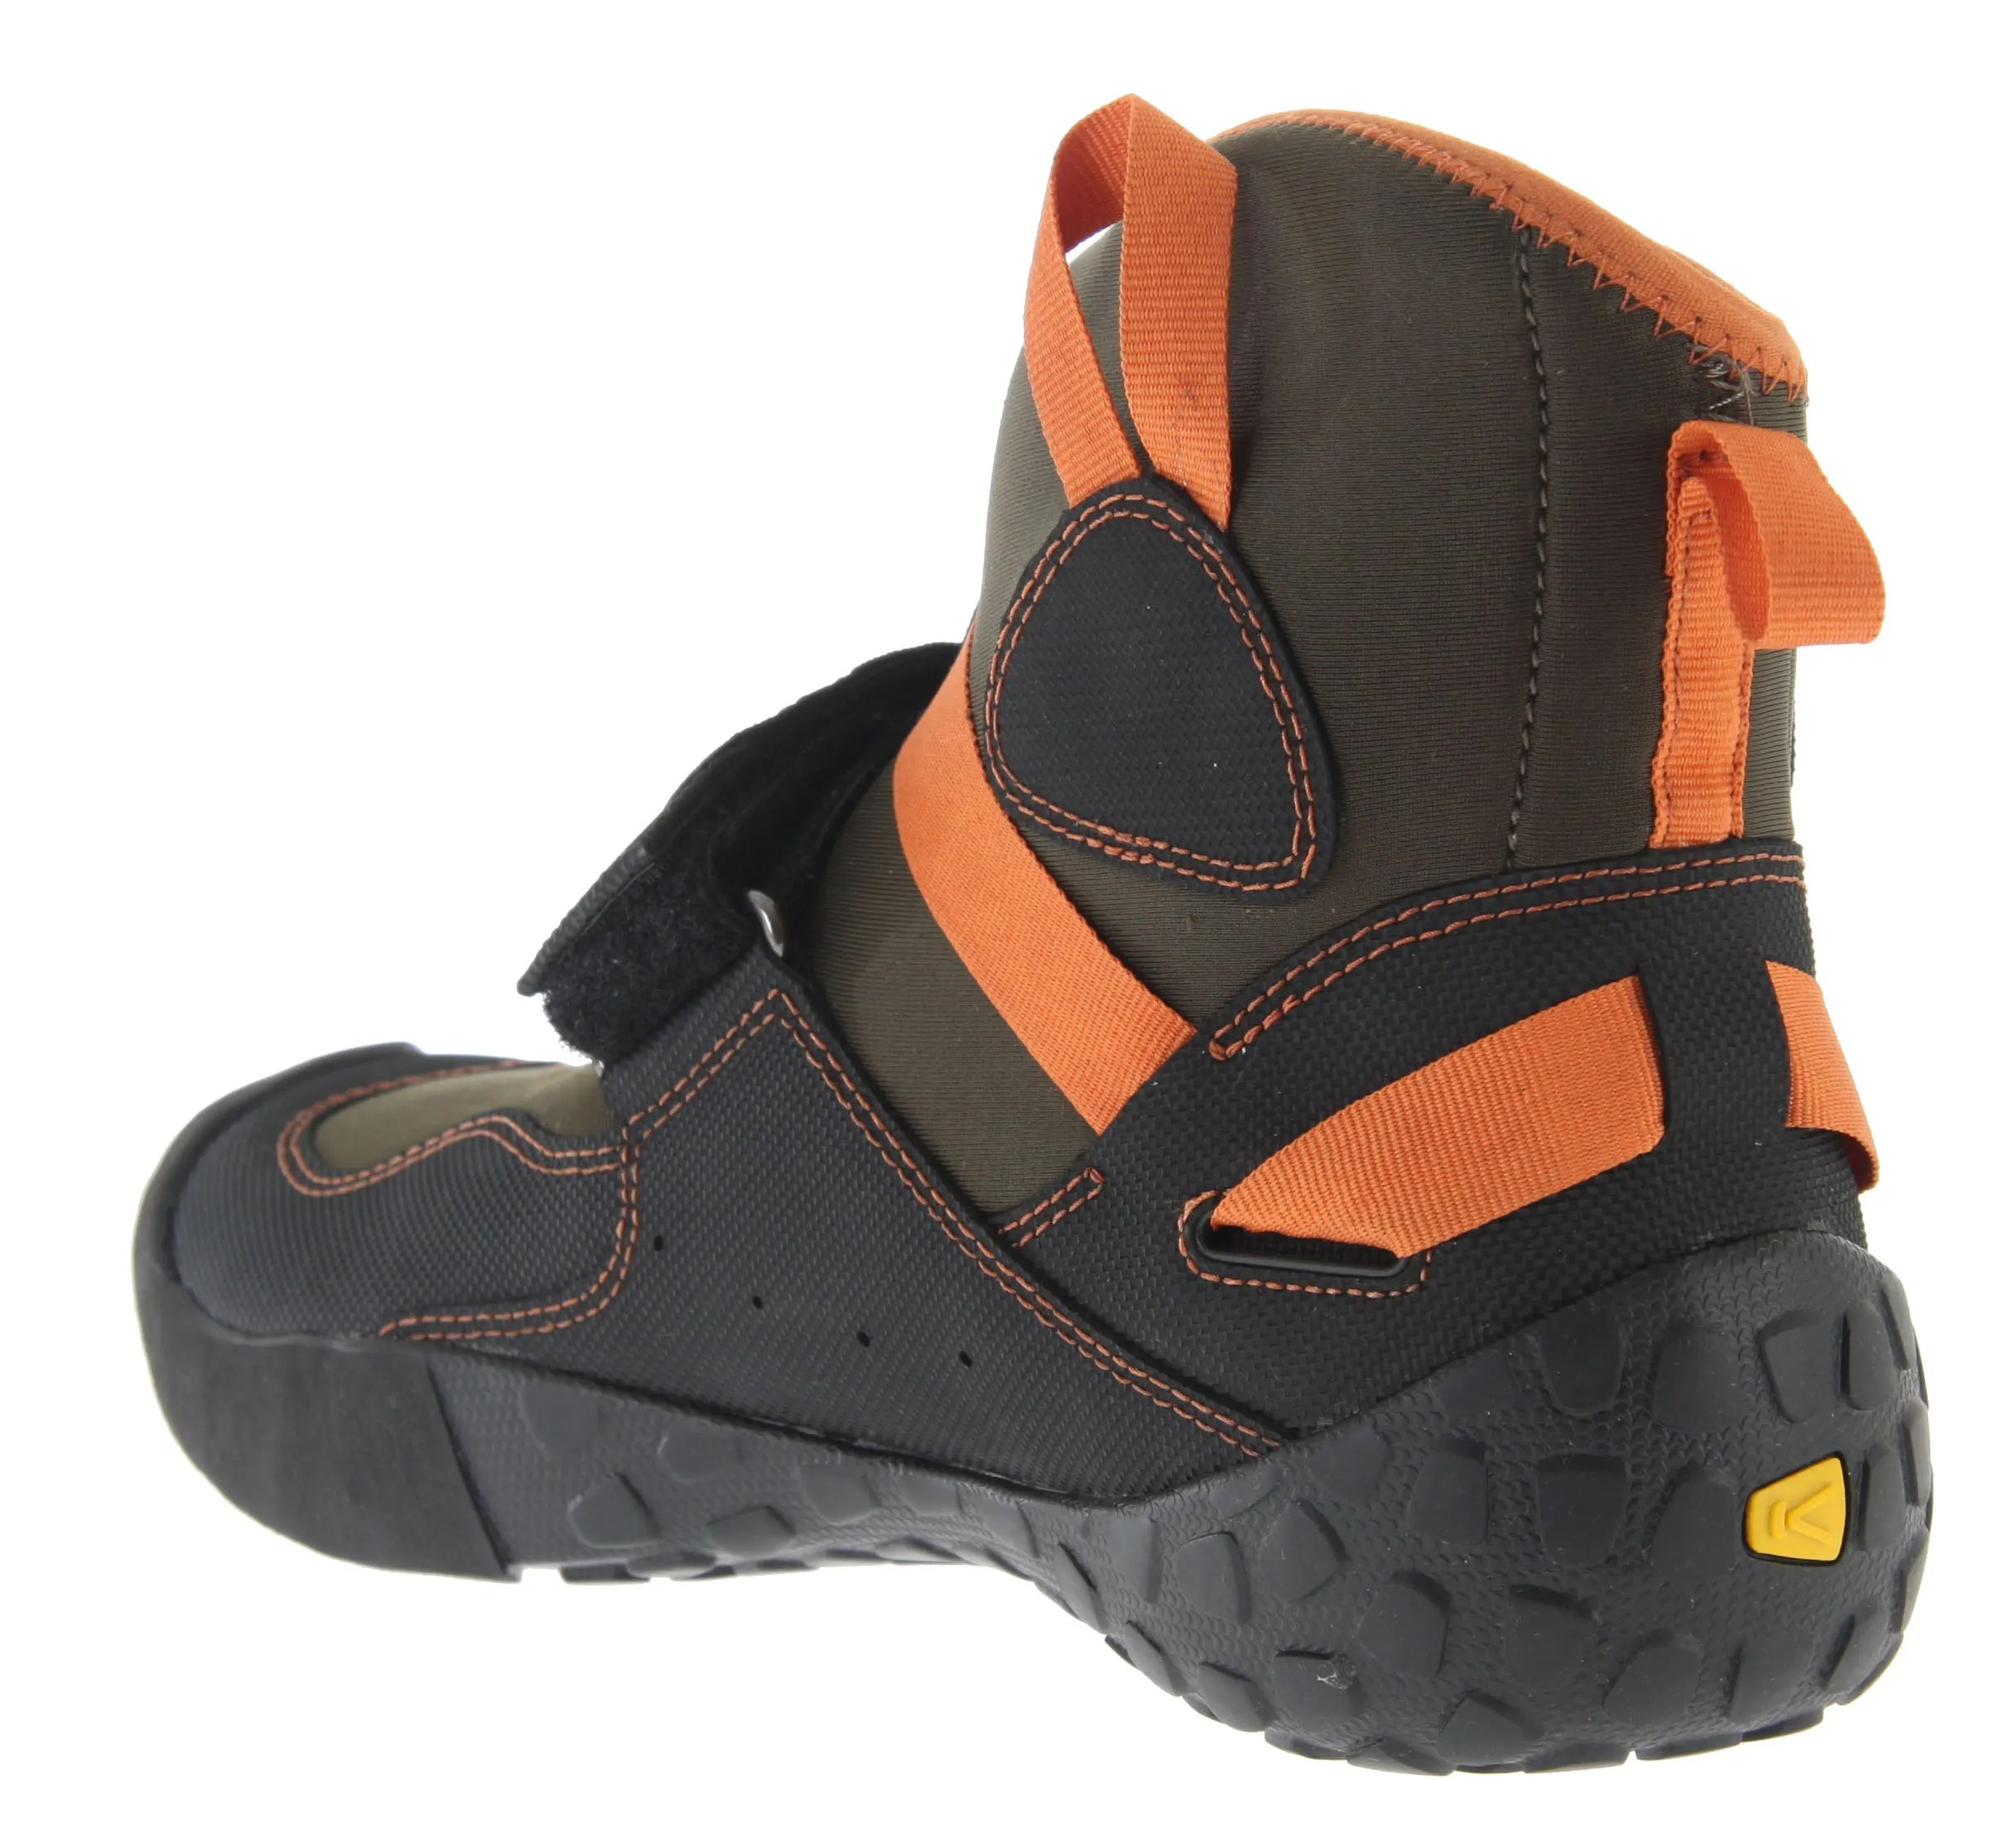 Keen Kids Shoes Clearance